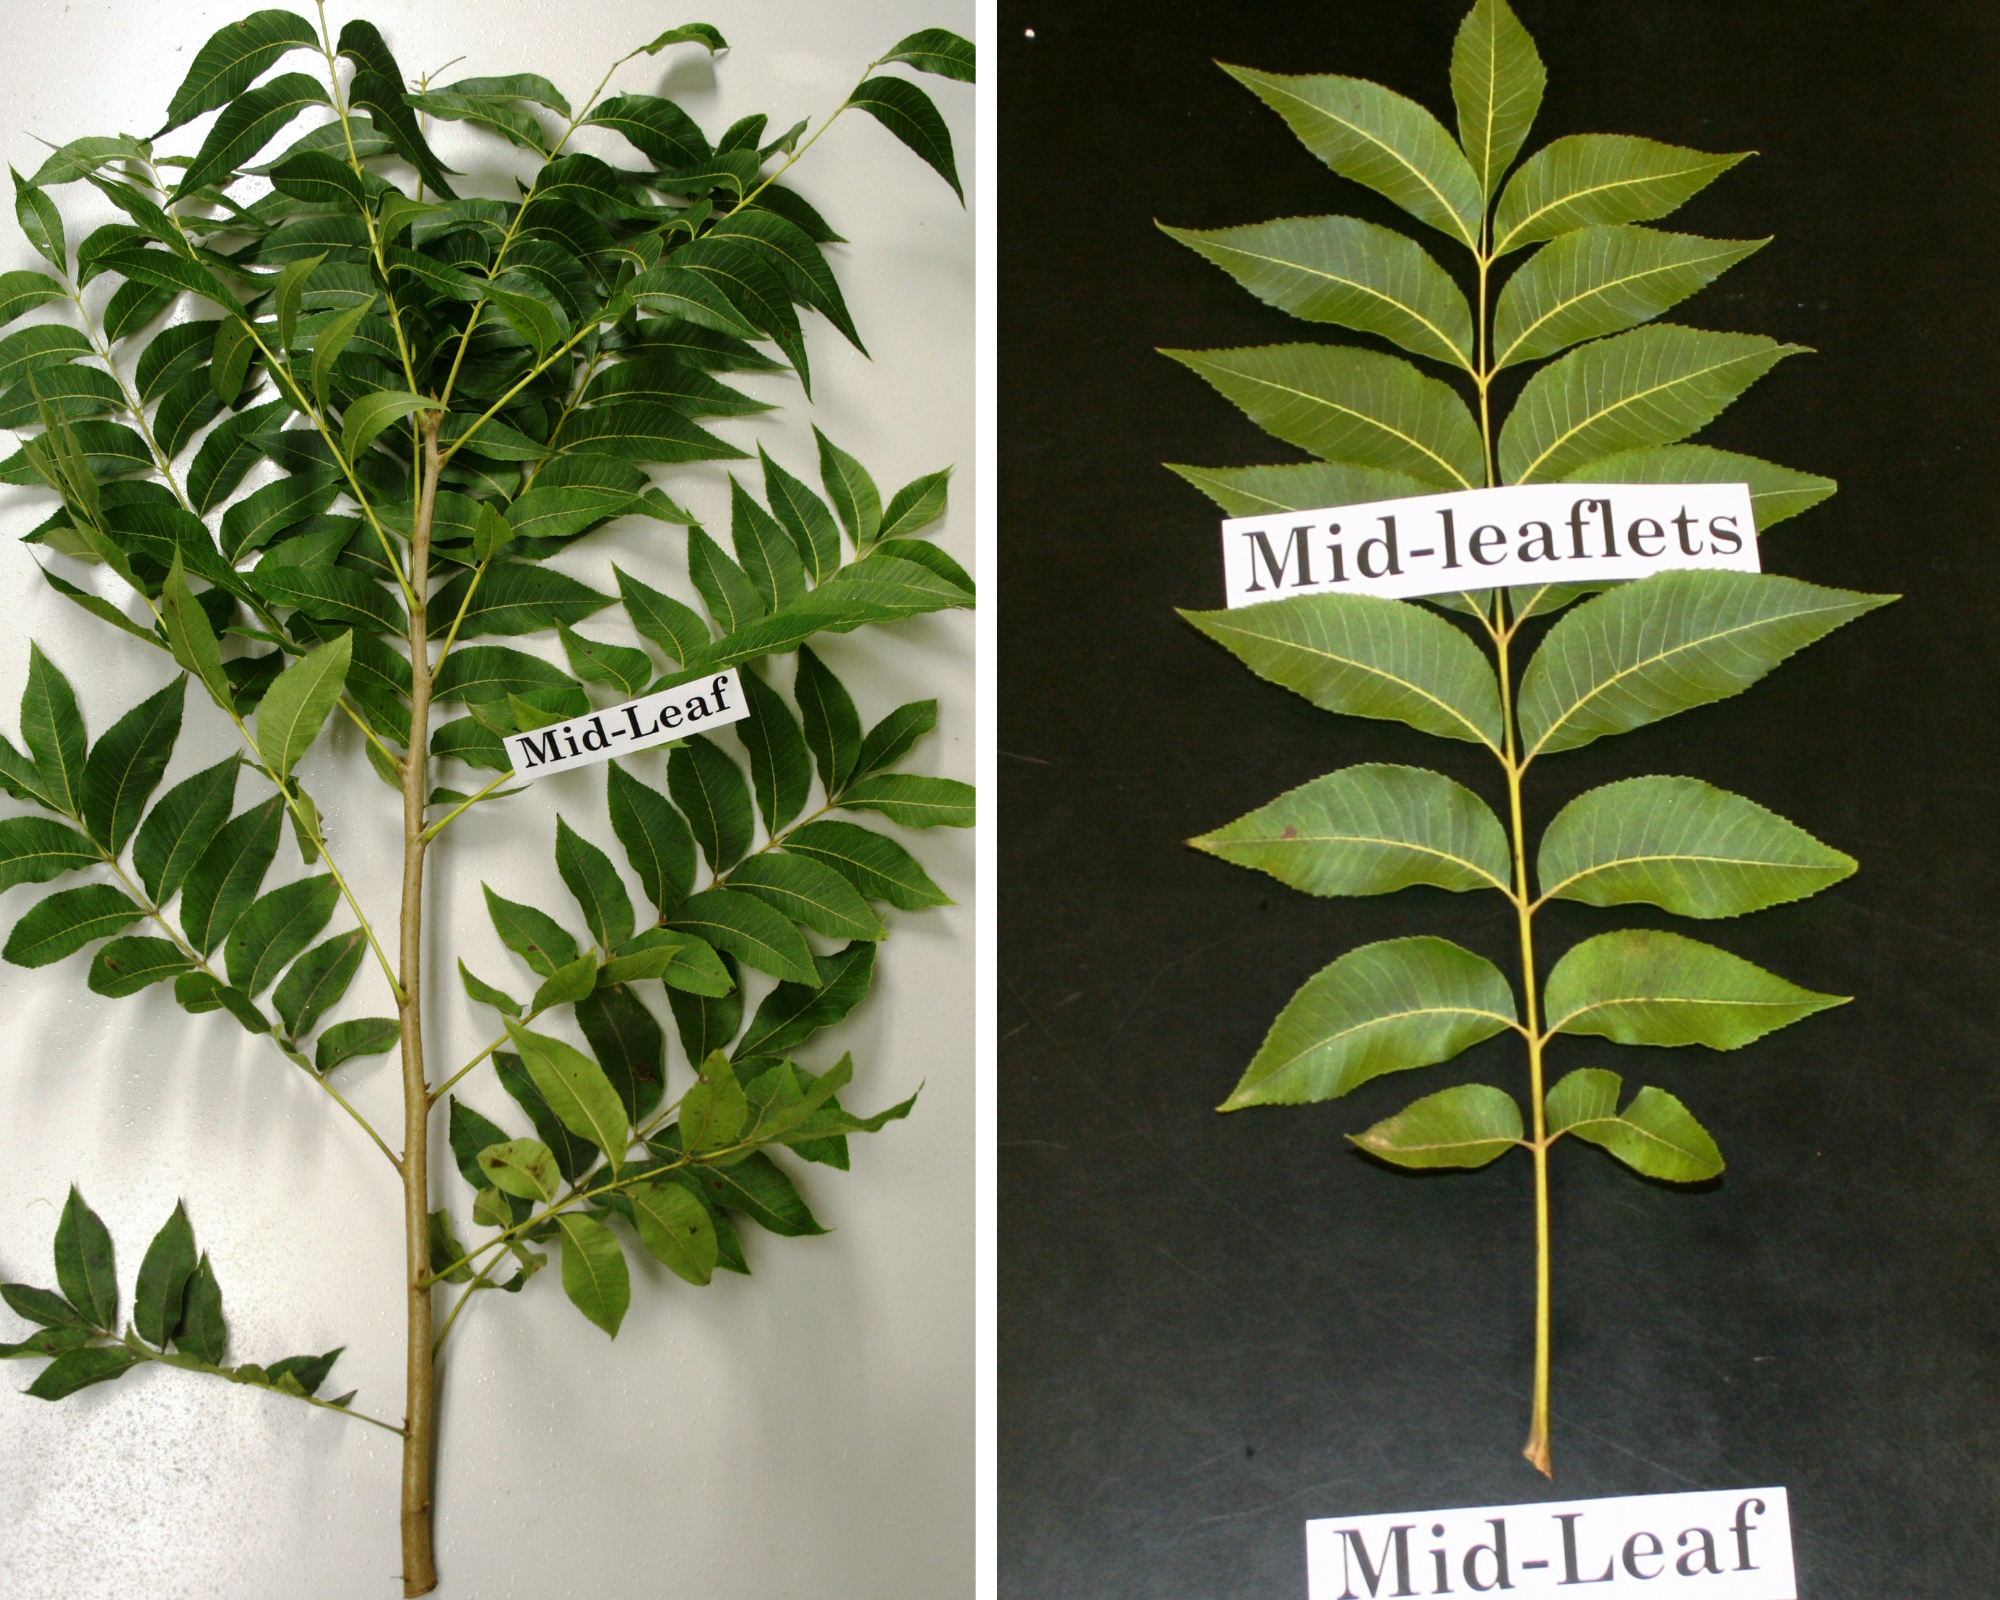 Images showing where to find the midleaf and midleaflets are located when collecting a sample for leaf analysis.